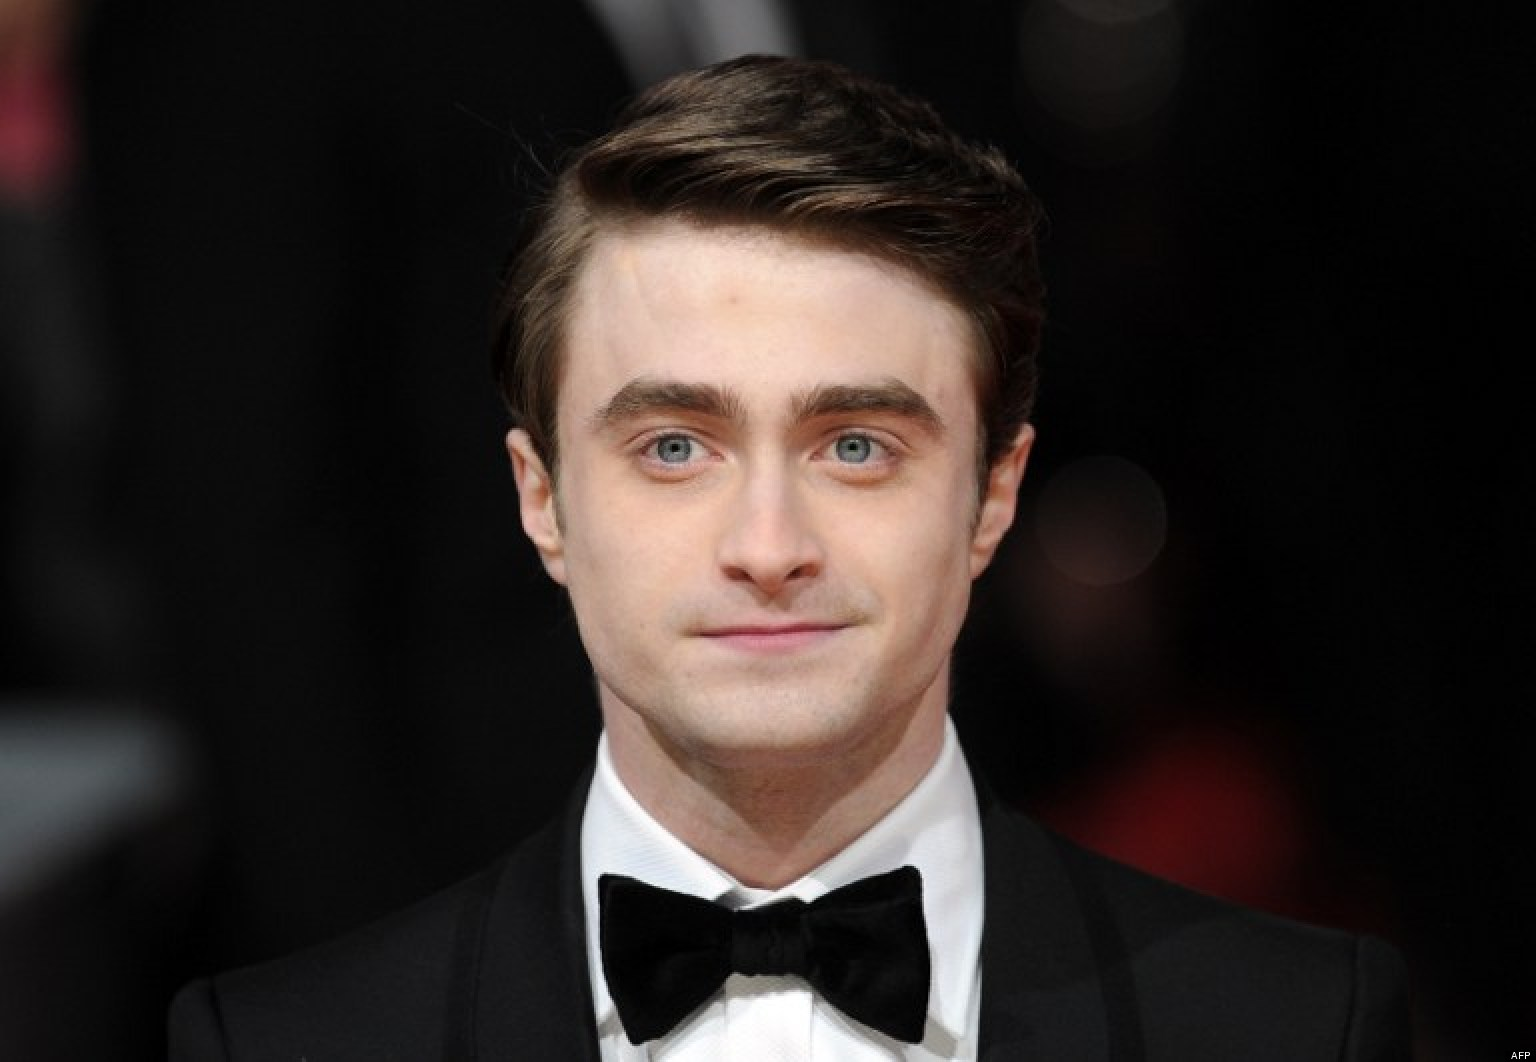 Harry Potter Grows Up: An Interview With Daniel Radcliffe ... Rupert Grint Married